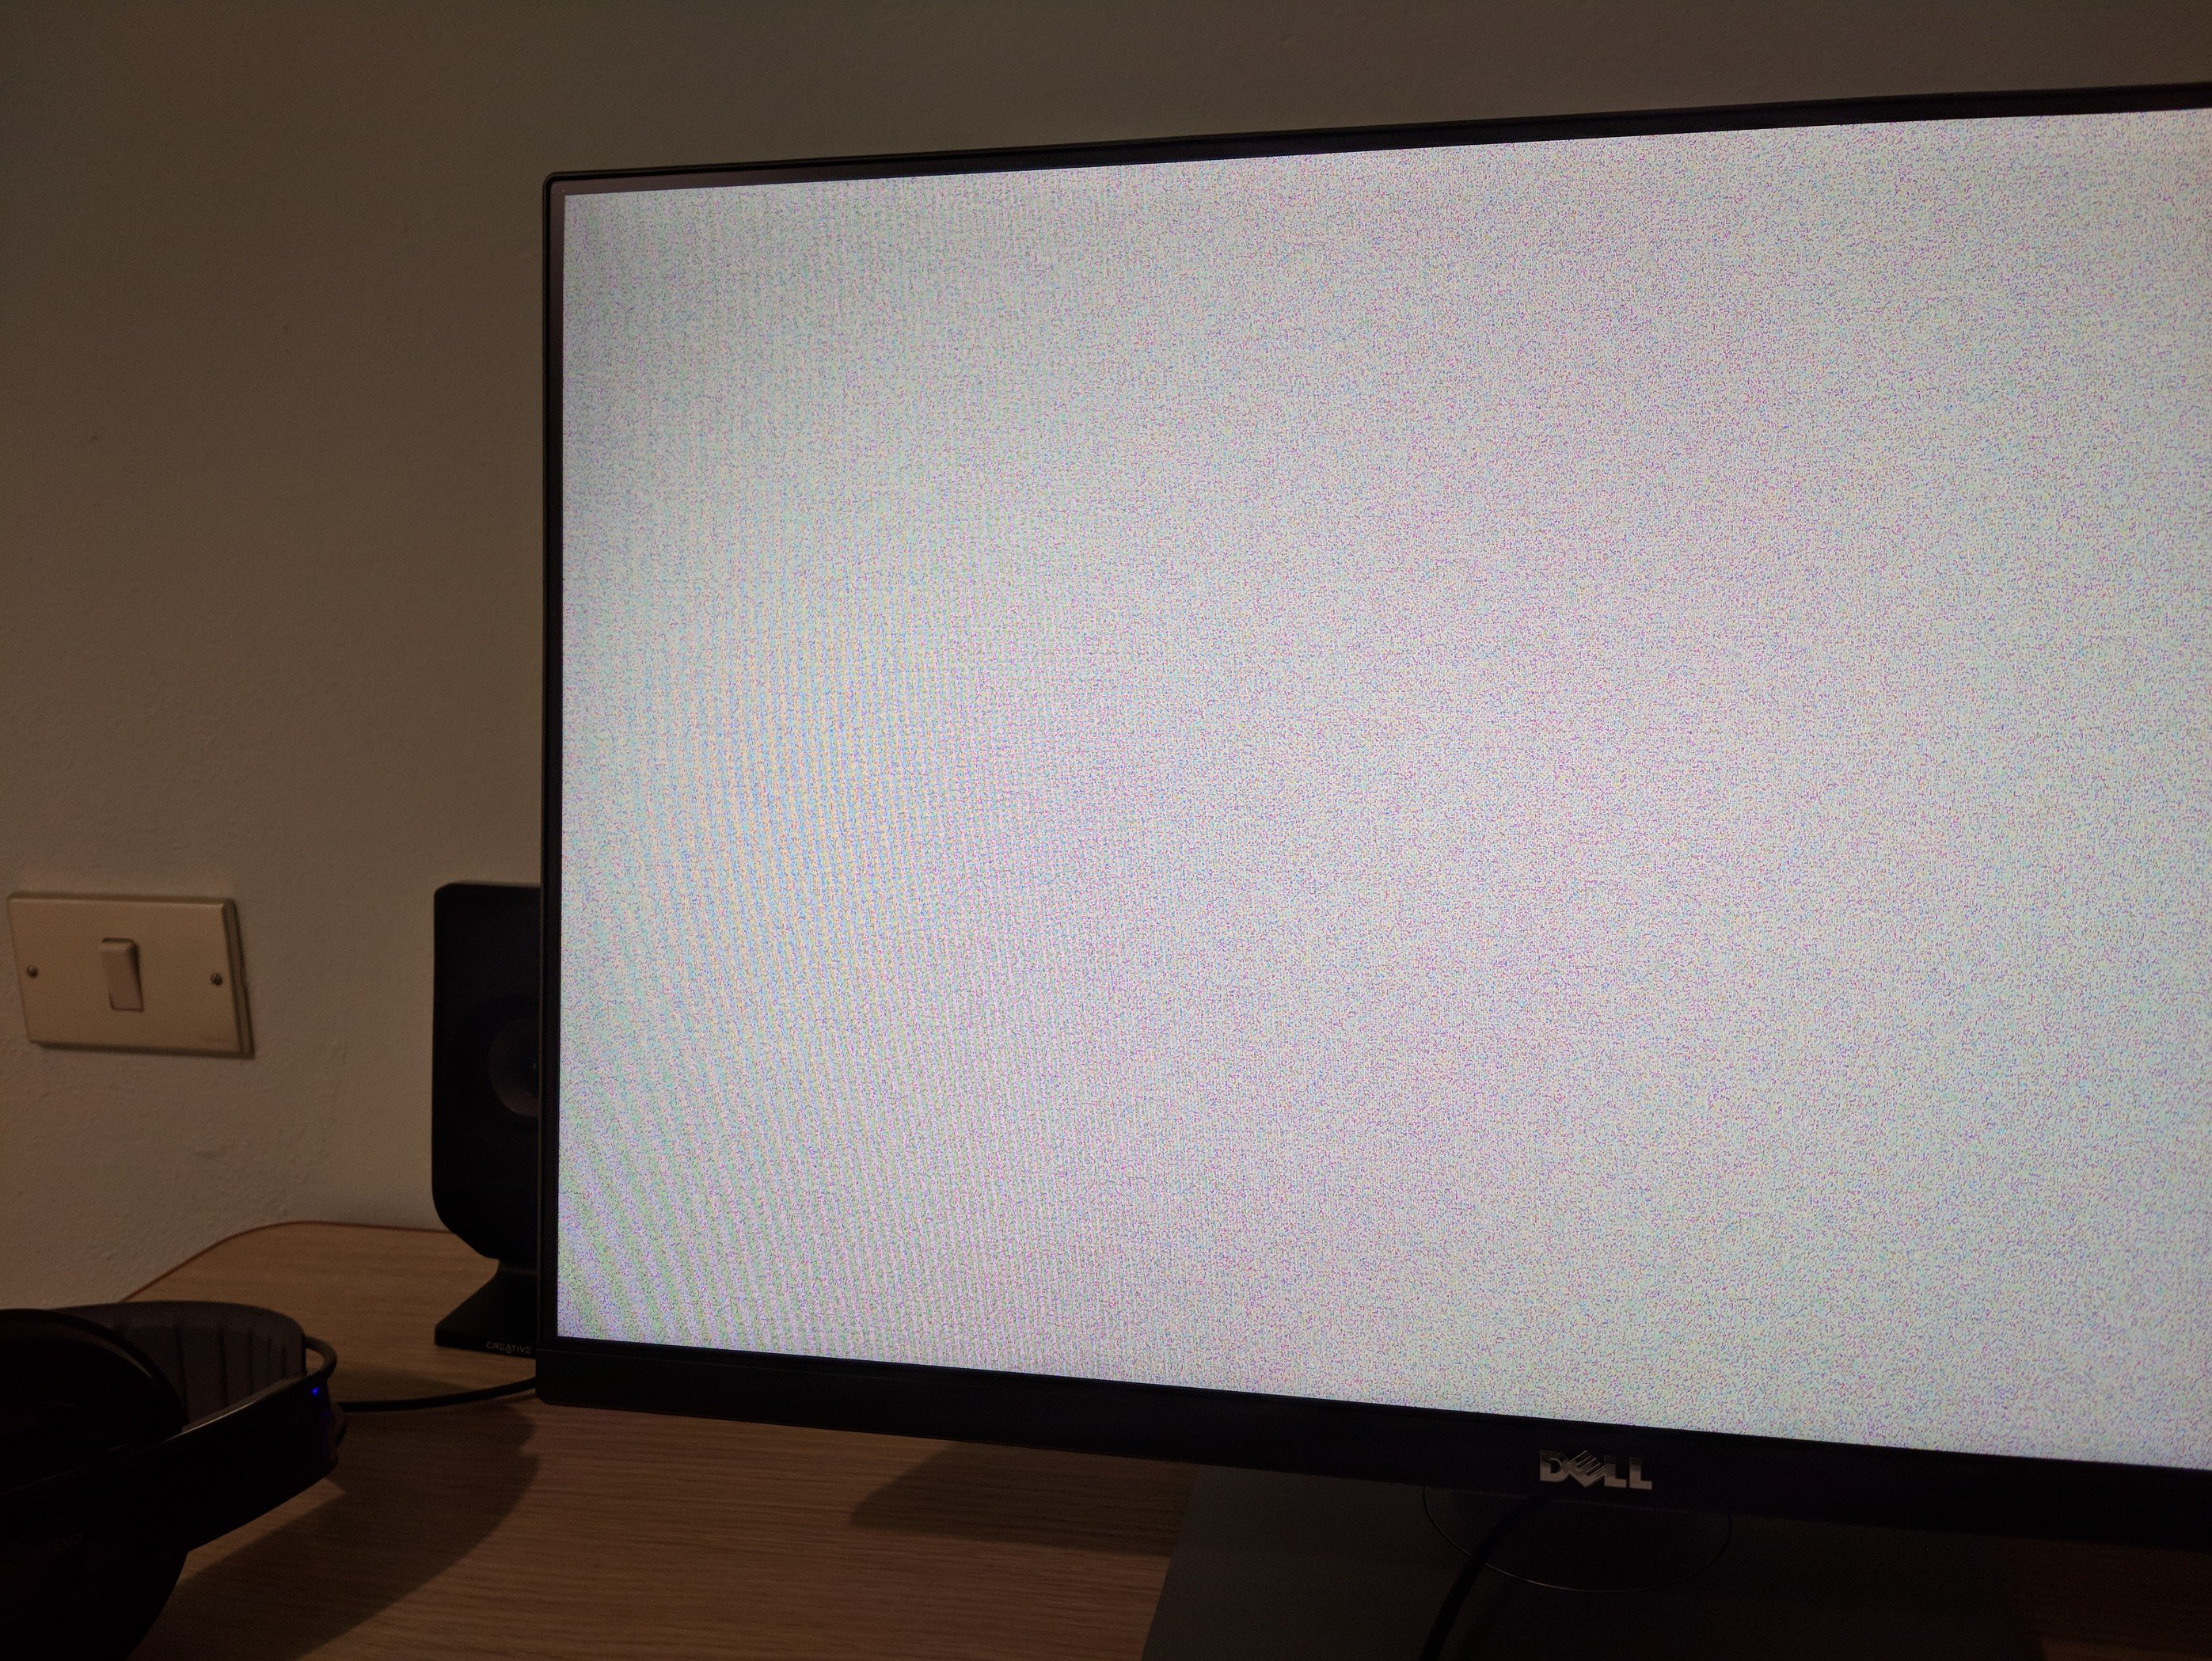 ⚓ T6878 Weird colorful screen and a freeze on shutting down